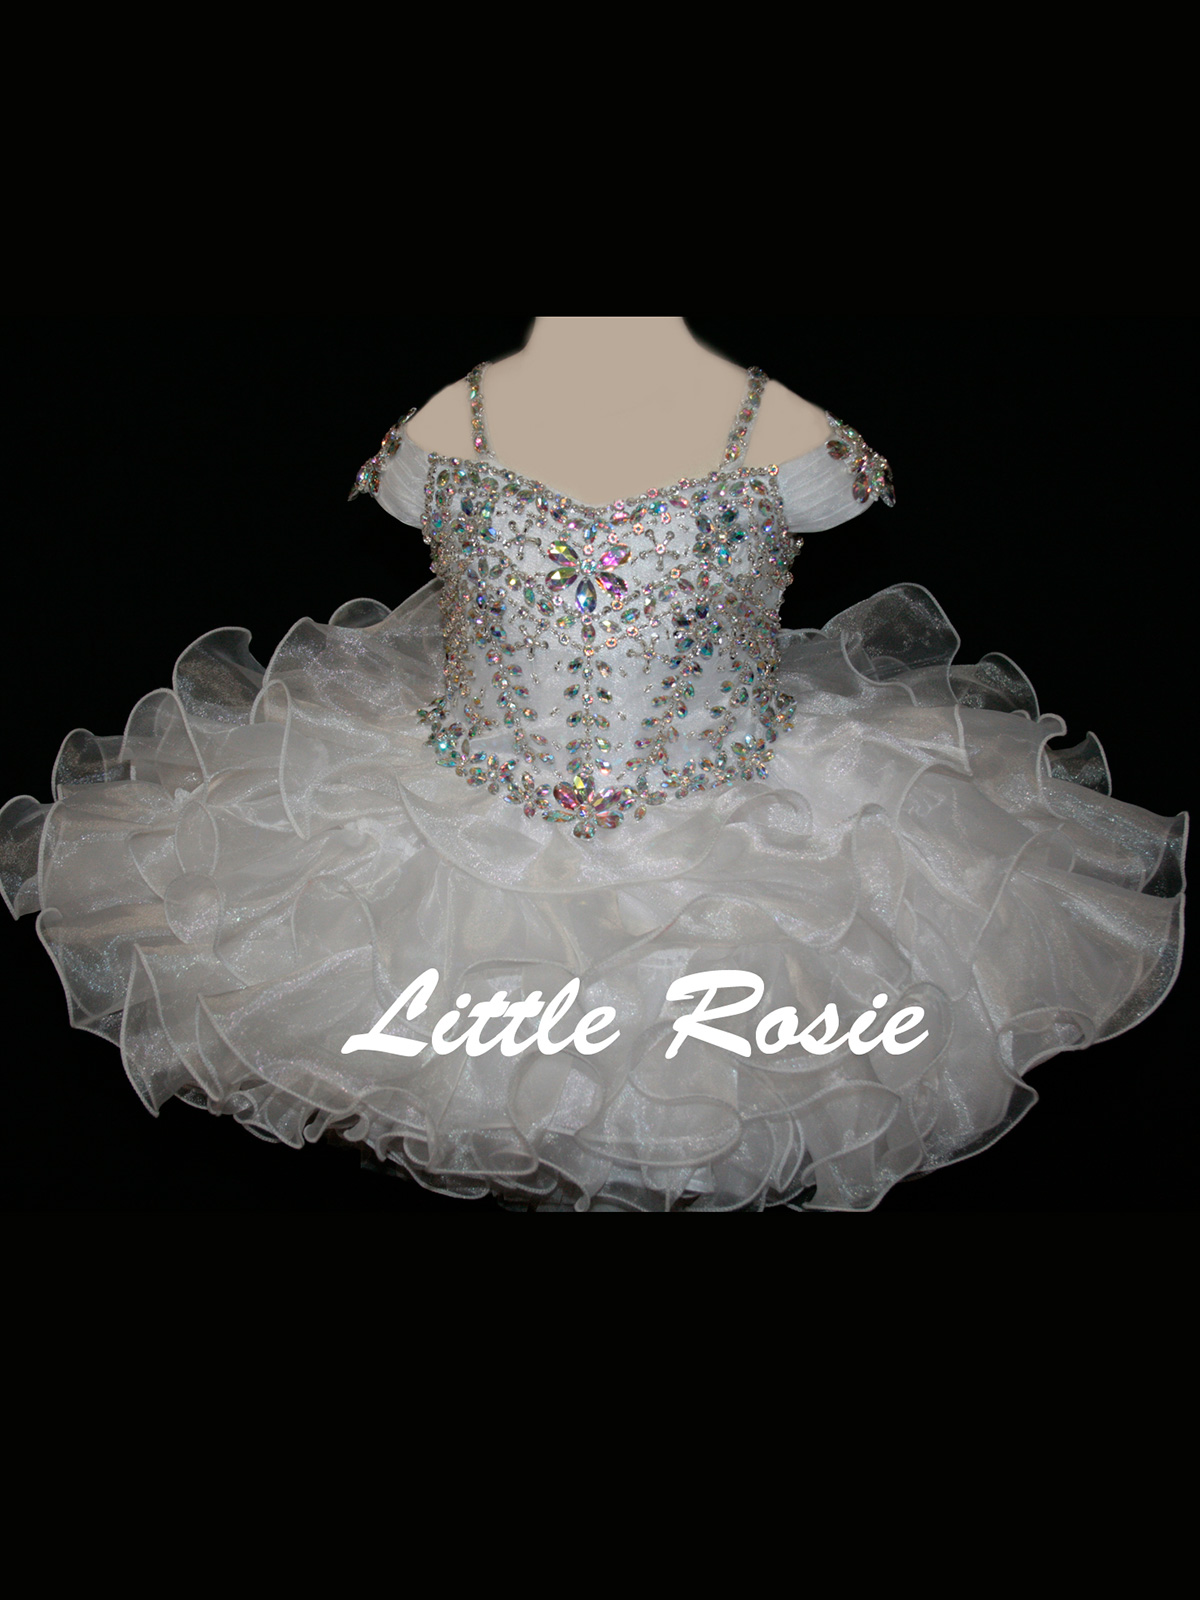 Little Rosie BR1309 Ruffled Skirt Pageant Dress|PageantDesigns.com